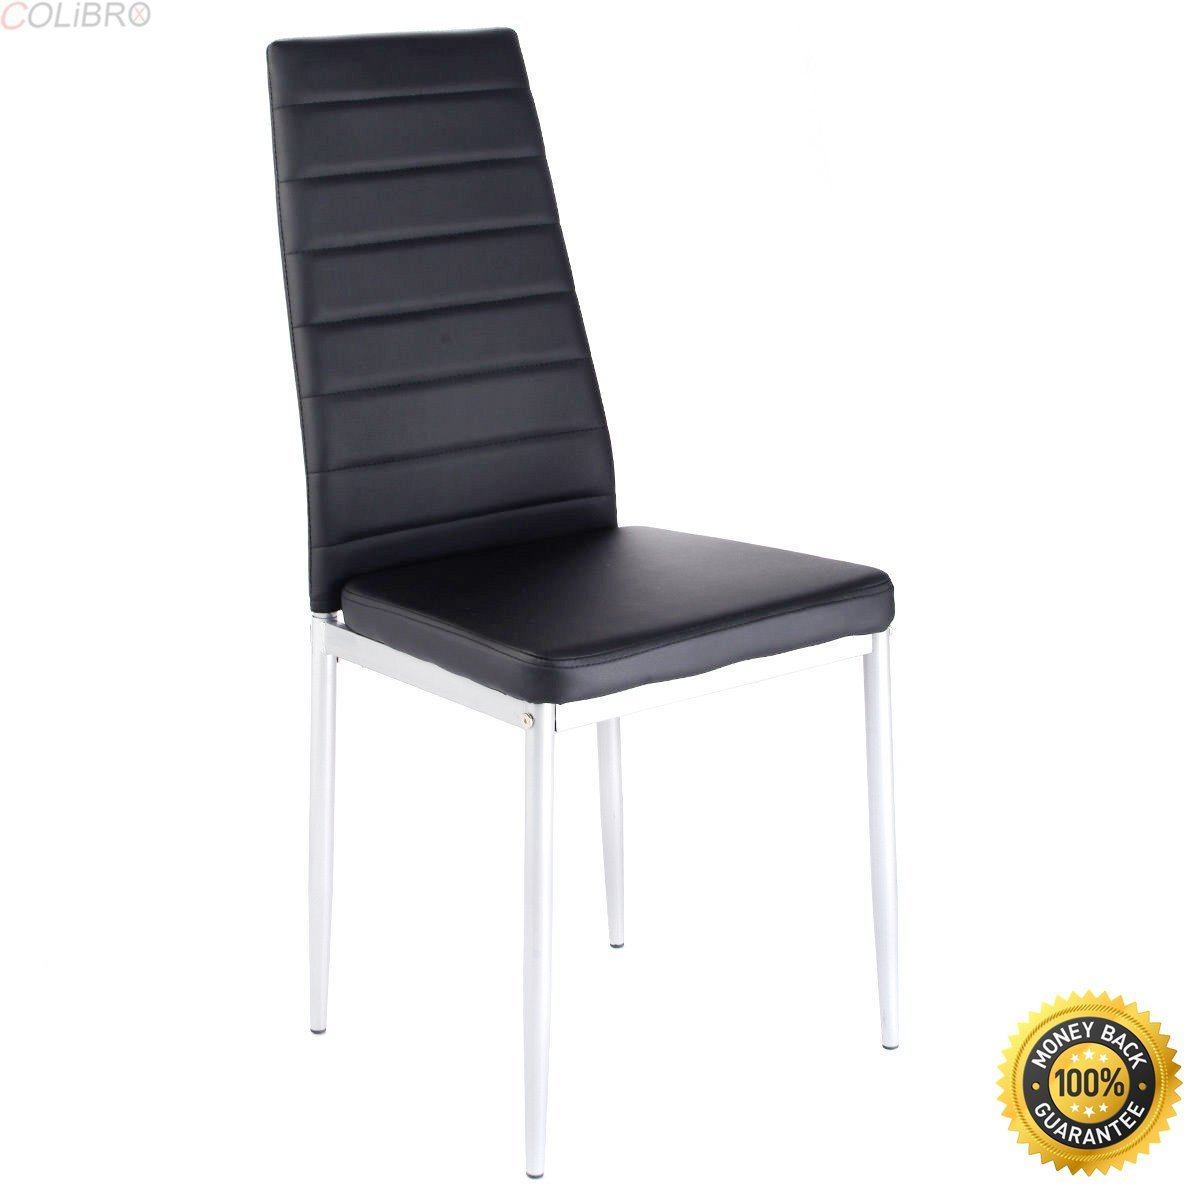 4 dining chairs for sale cheap get quotations colibroxset of pu leather dining side chairs elegant design home furniture black cheap modern chairs find deals on line